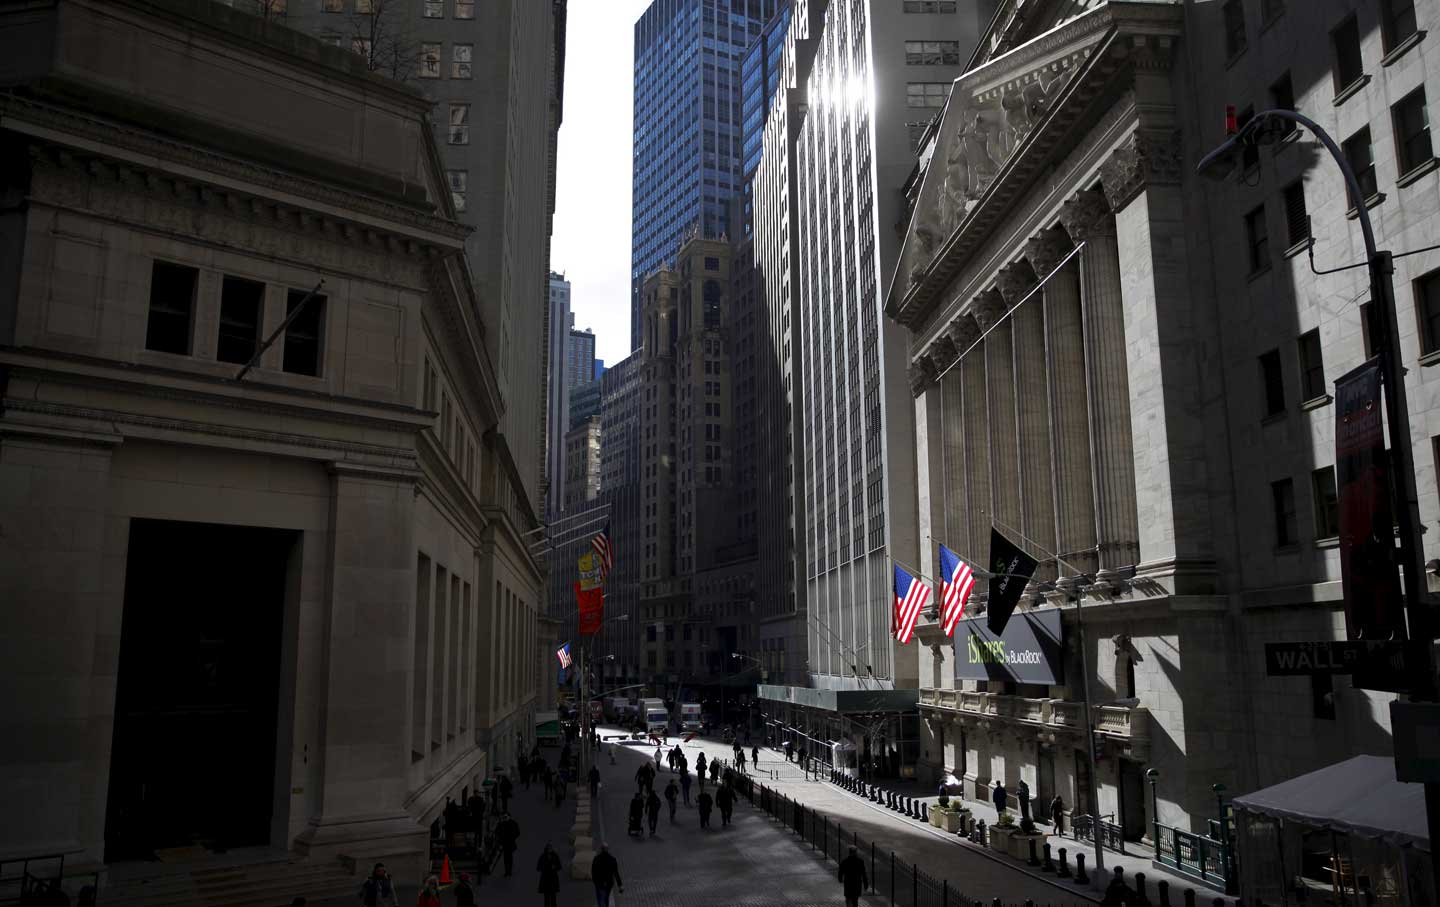 The New York Stock Exchange building